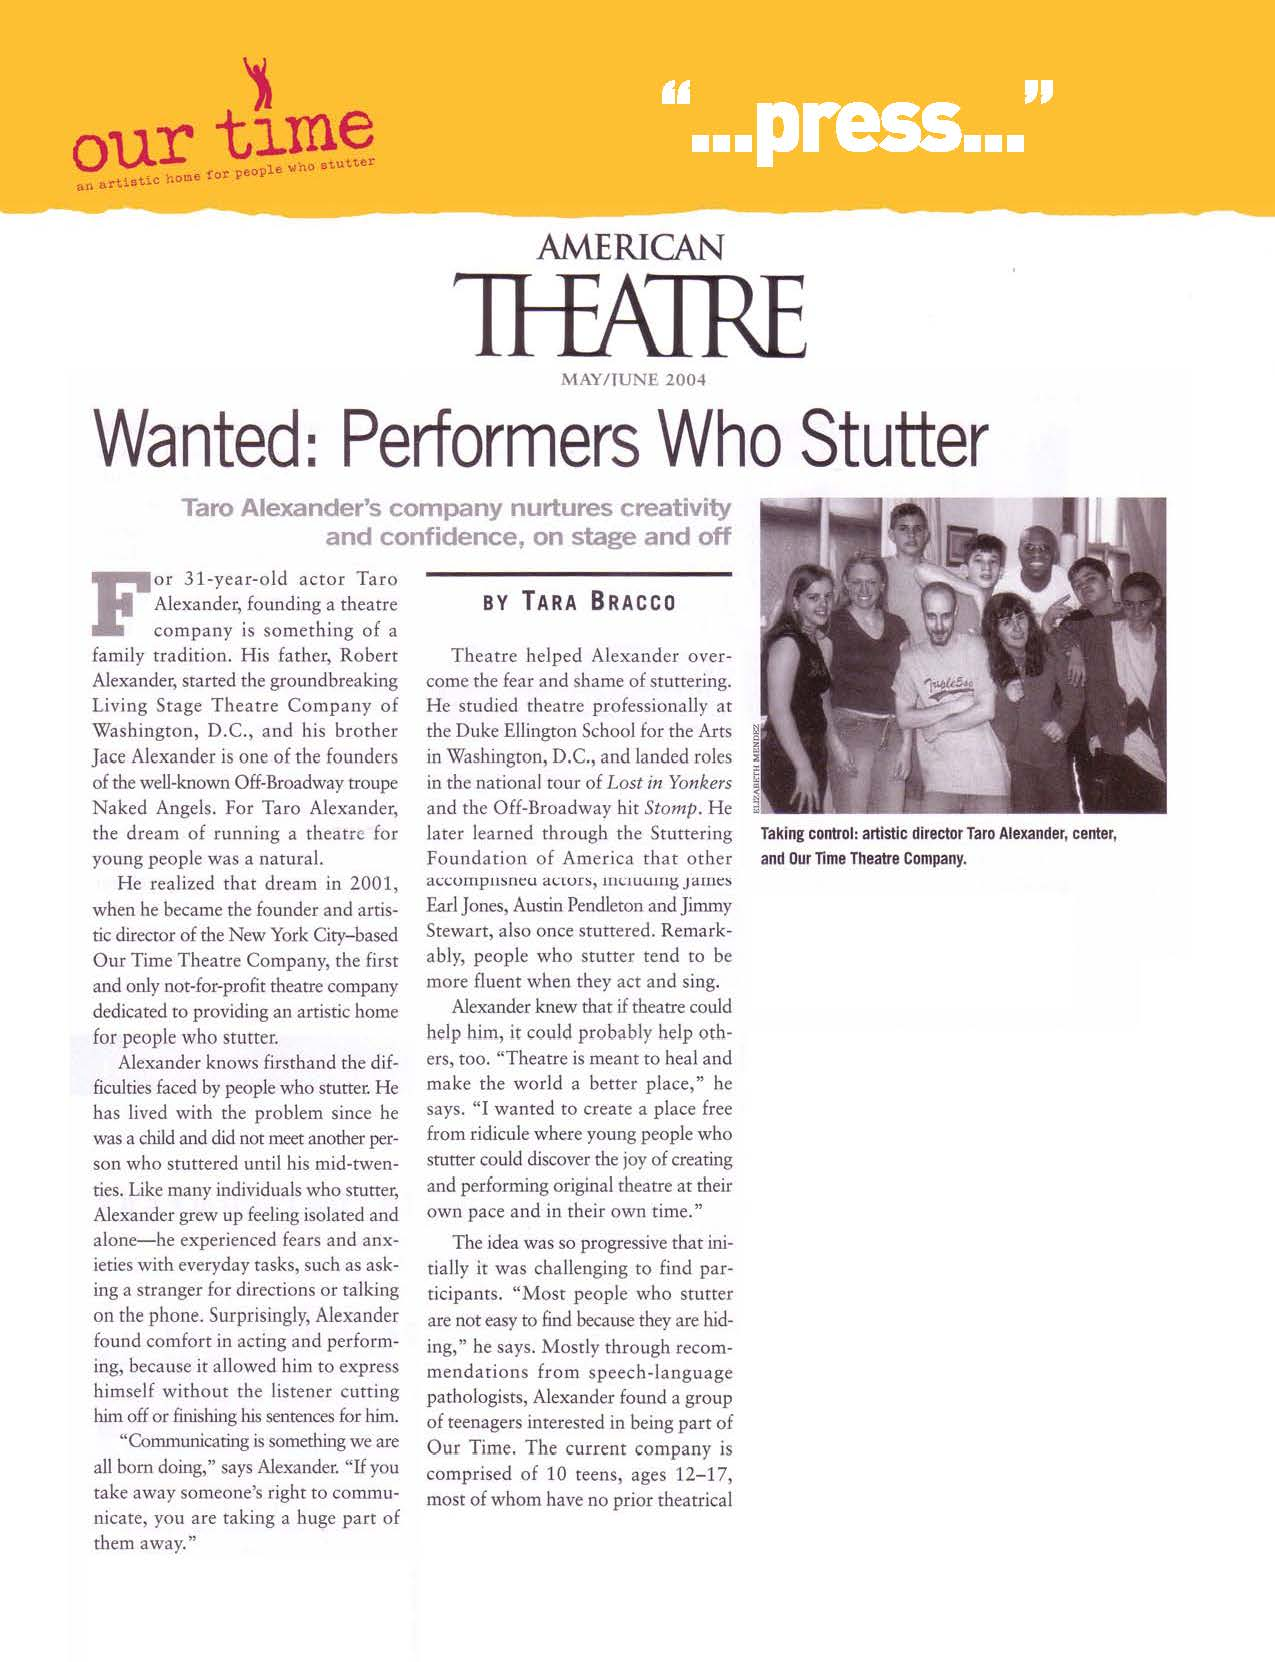 Wanted: Performers Who Stutter